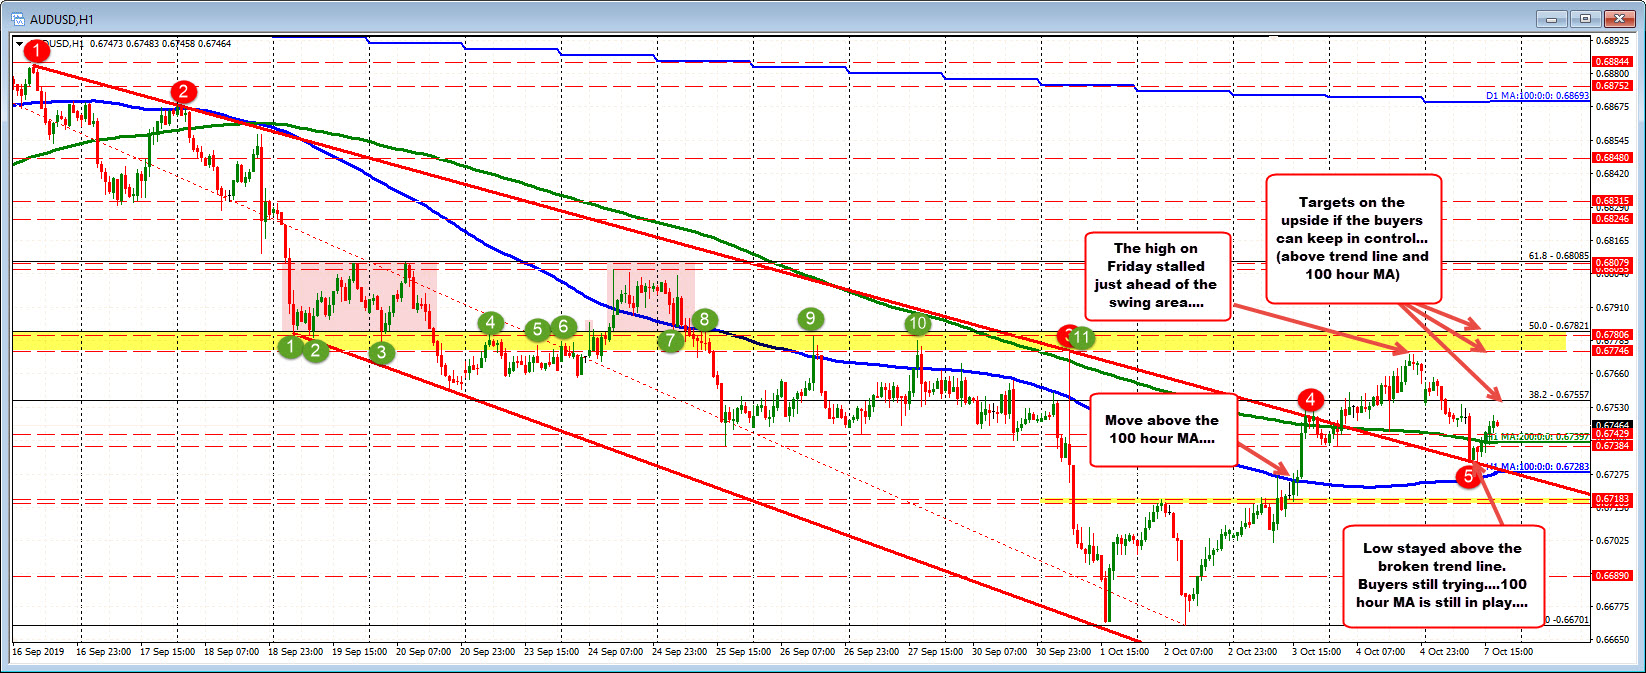 AUDUSD trying to recover off lows.